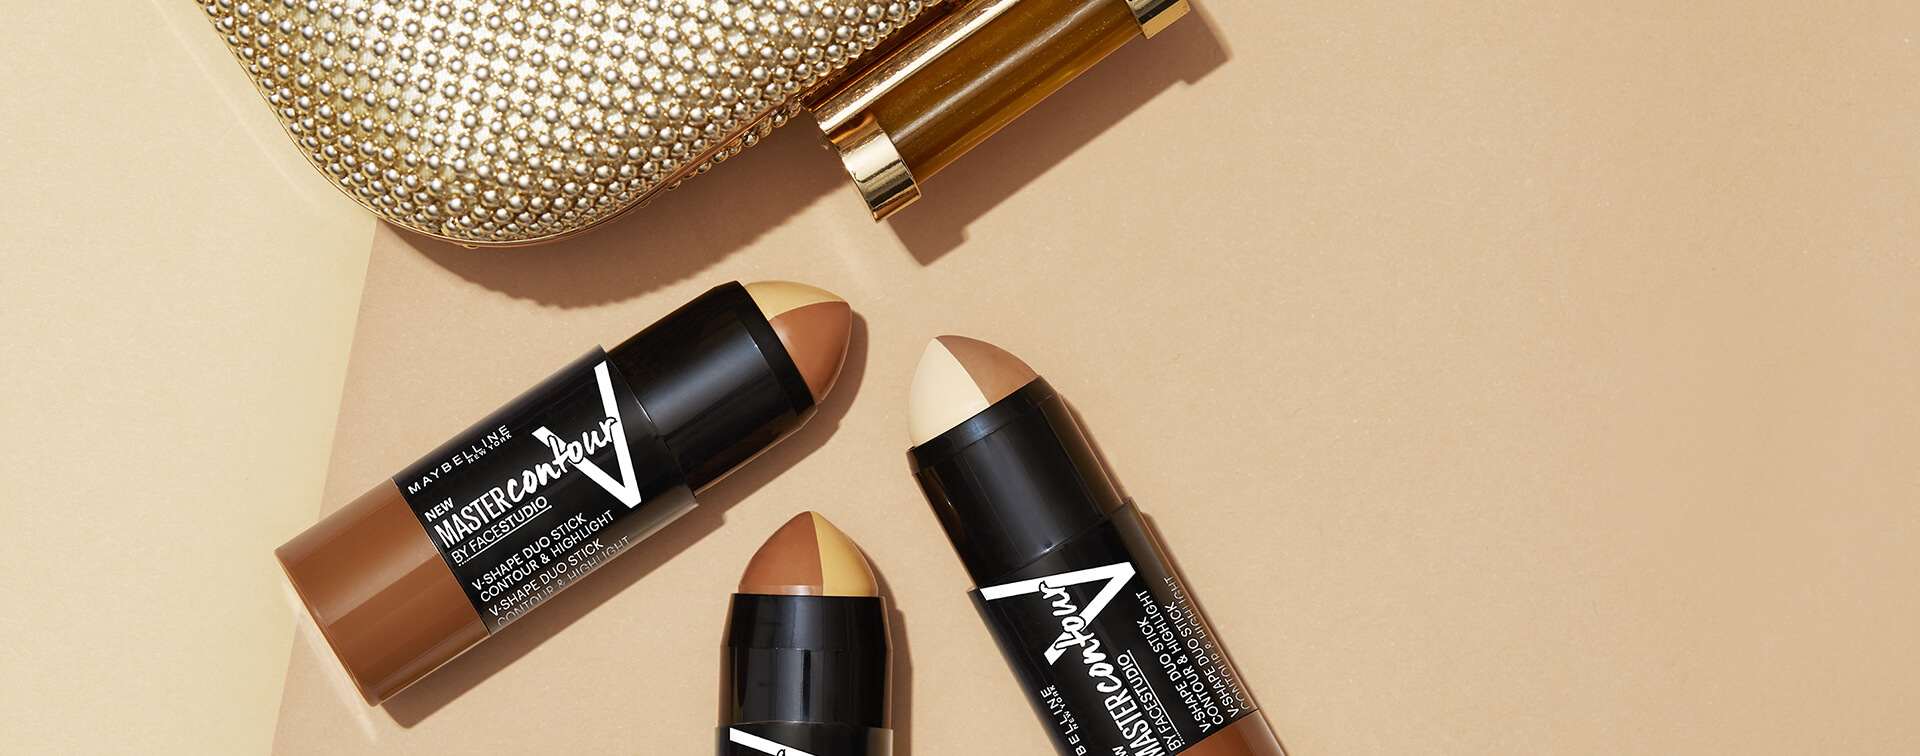 Maybelline New York - influencer relations header